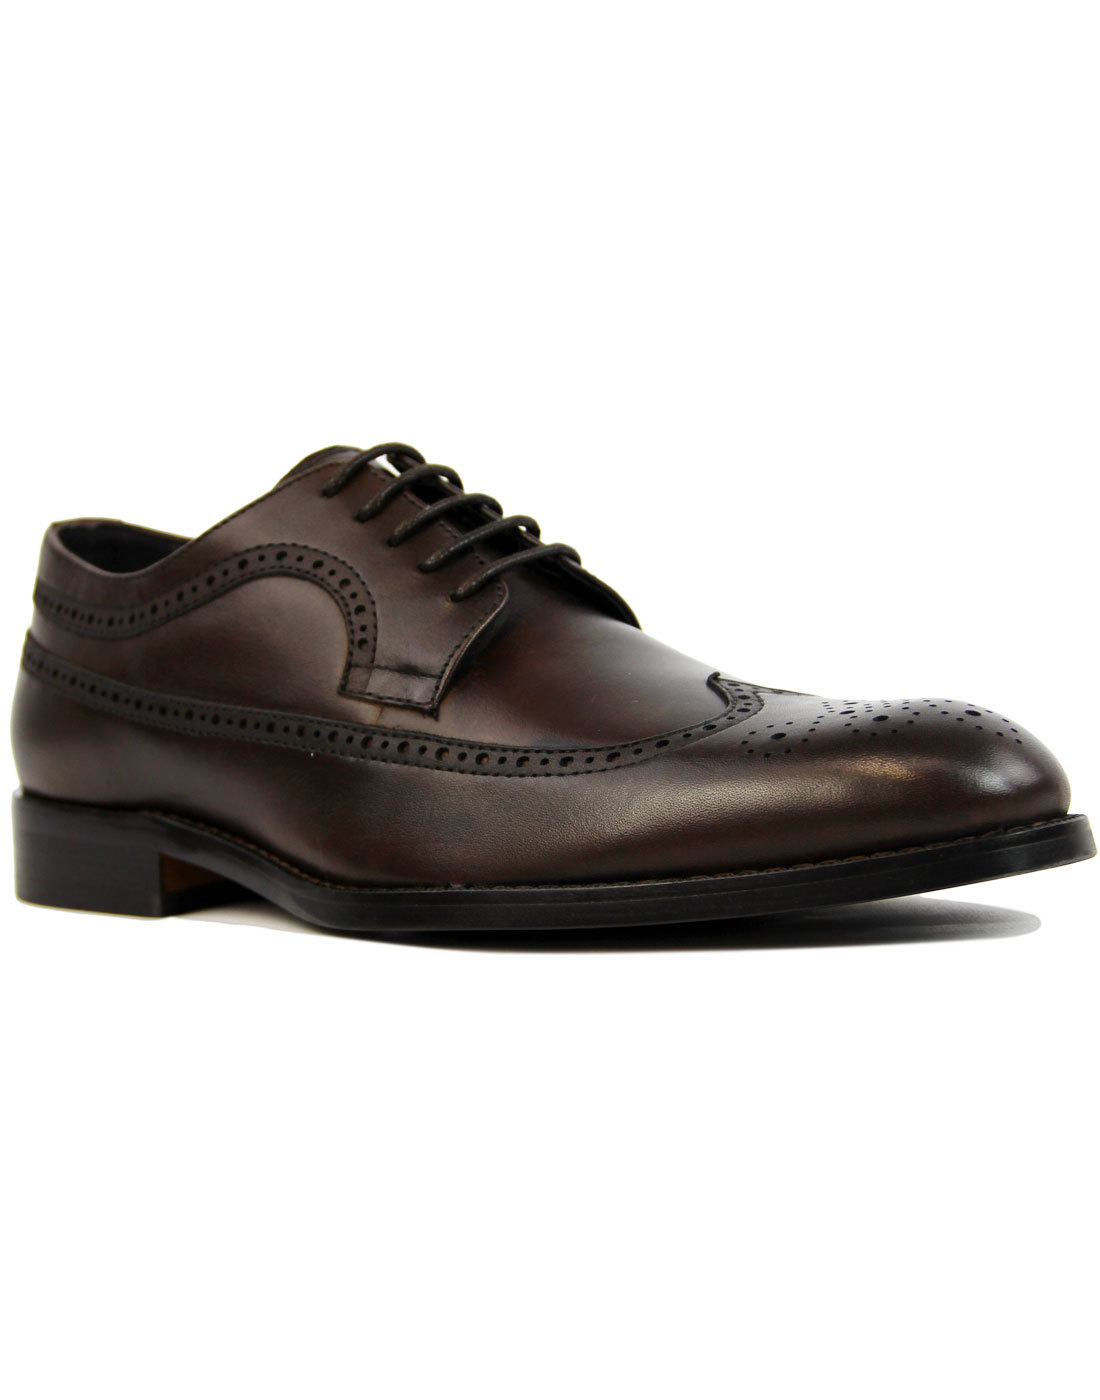 Ryan PAOLO VANDINI Mod Ivy League Wingtip Brogues